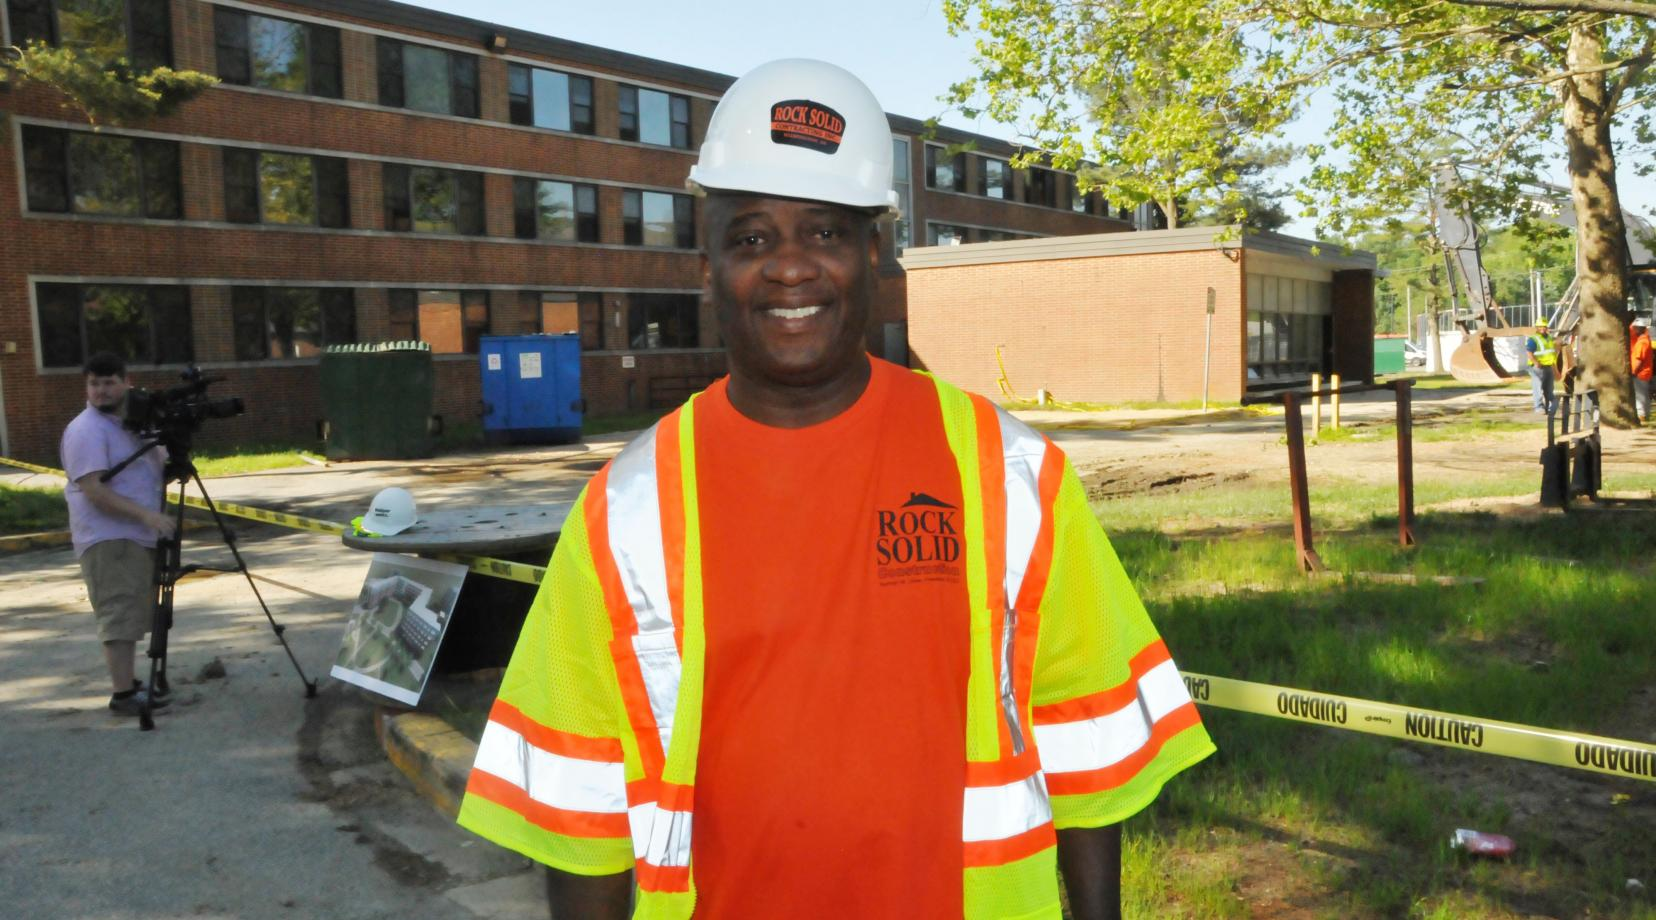 <p>DSU alumnus Norman Oliver's Rock Solid Contracting is enlisted along with Wohlsen Construction to demolish Laws Hall -- the same residential hall where he worked as a residential assistant in the early 1980s.</p>